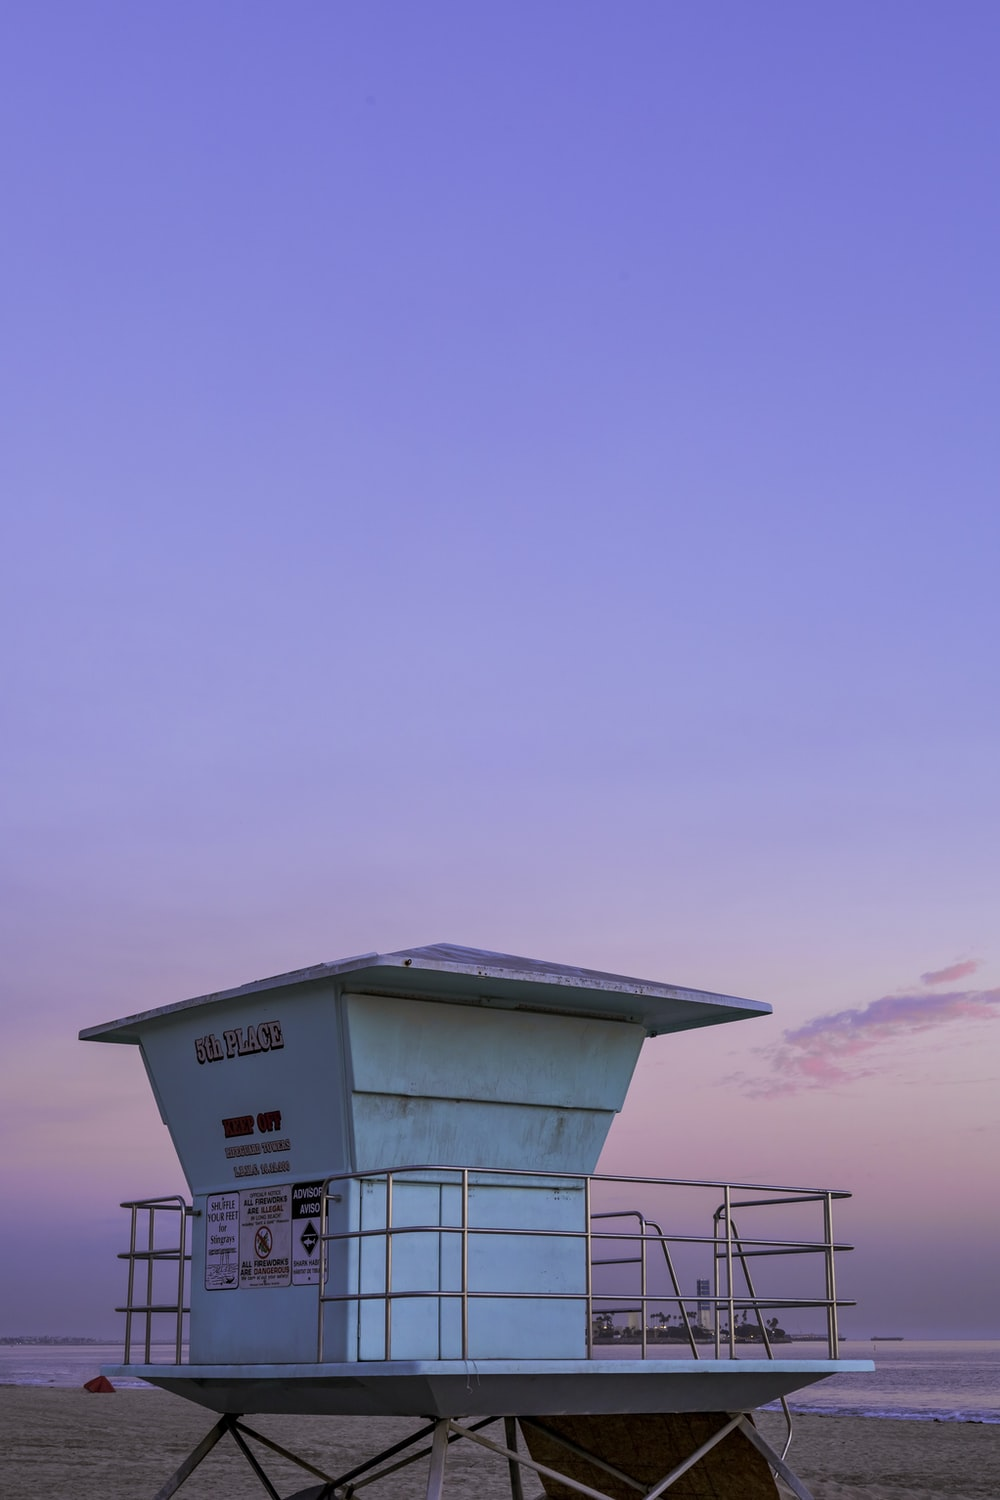 white and red lifeguard house under blue sky during daytime